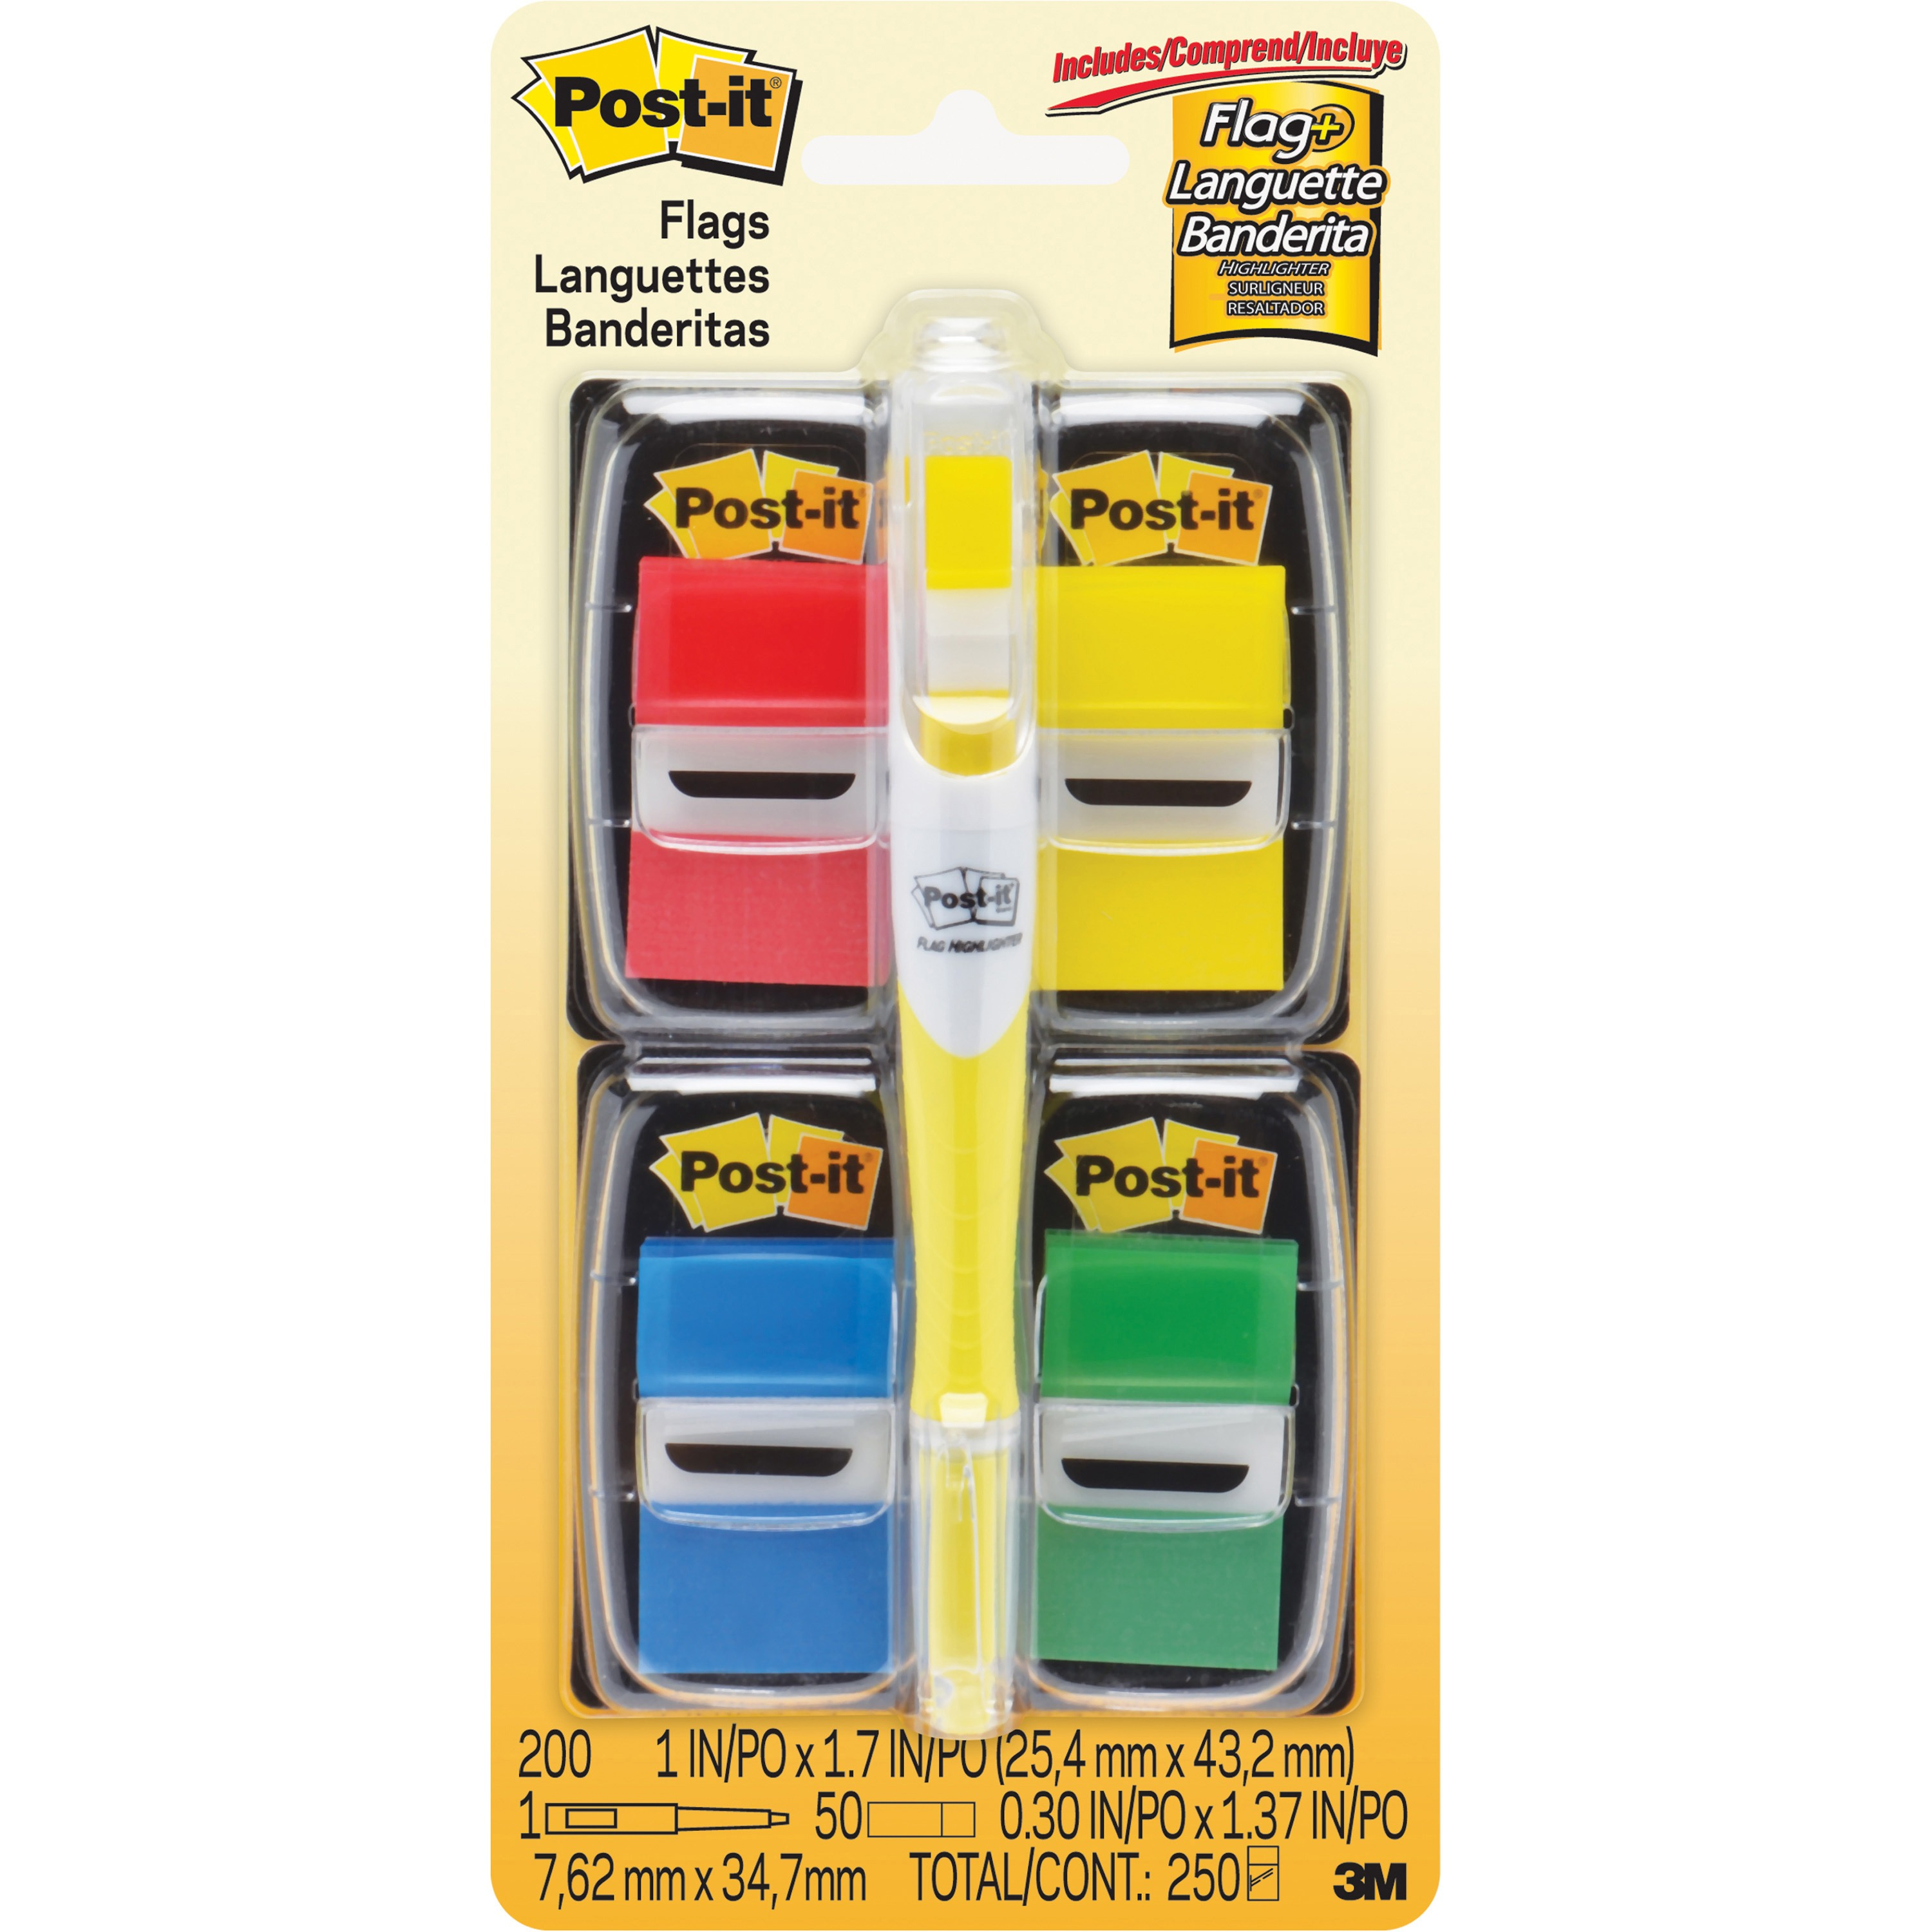 Post-it®, MMM680RYBGVA, Assorted Flags Value Bonus Pack, 225 / Pack, Blue,Green,Red,Yellow,Assorted